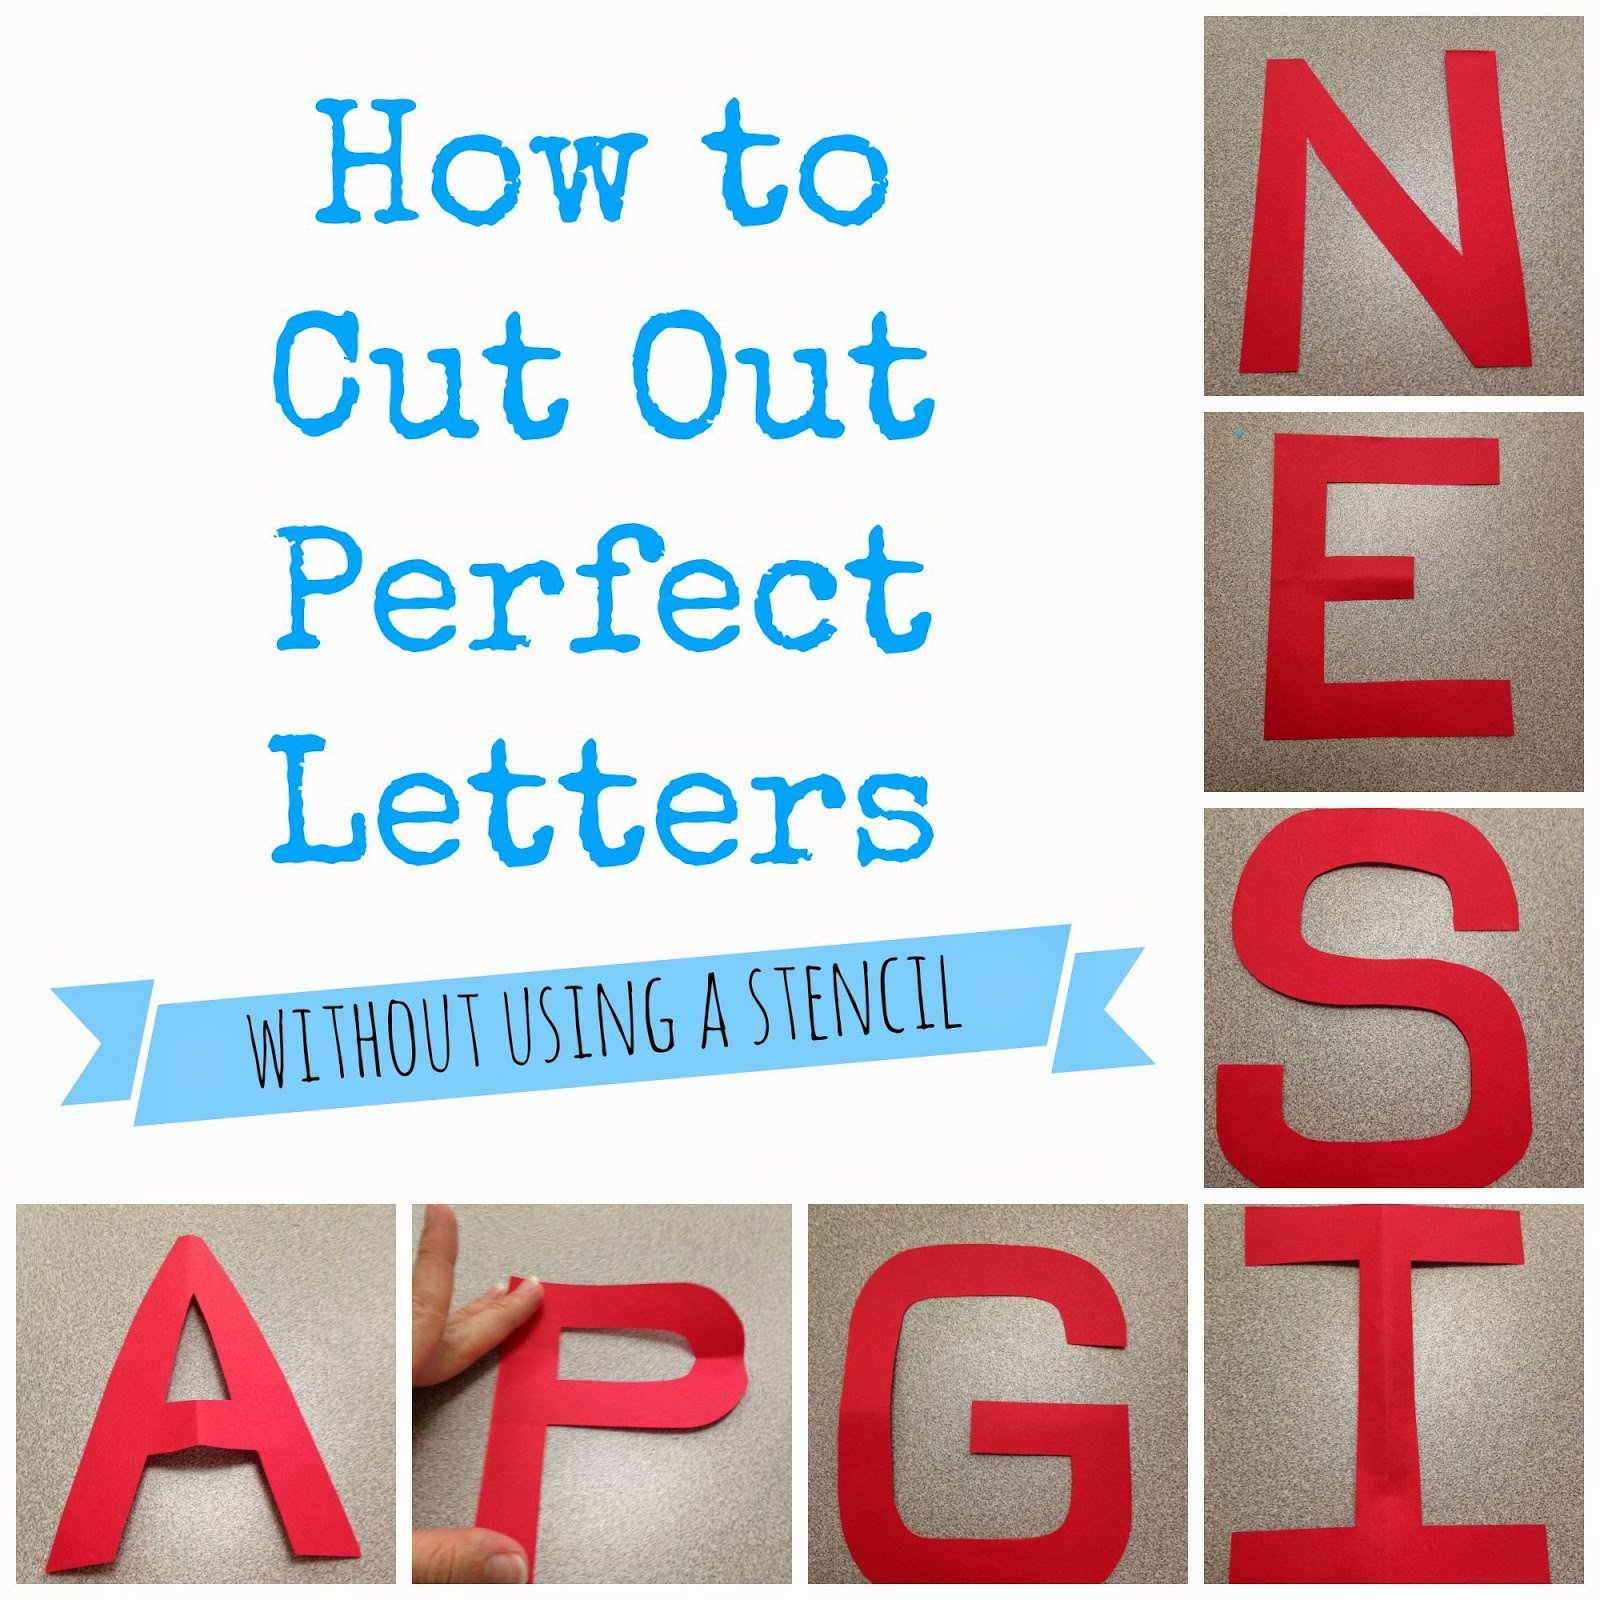 Cut Out Alphabet Letters New the Morgan S How to Cut Out Perfect Letters